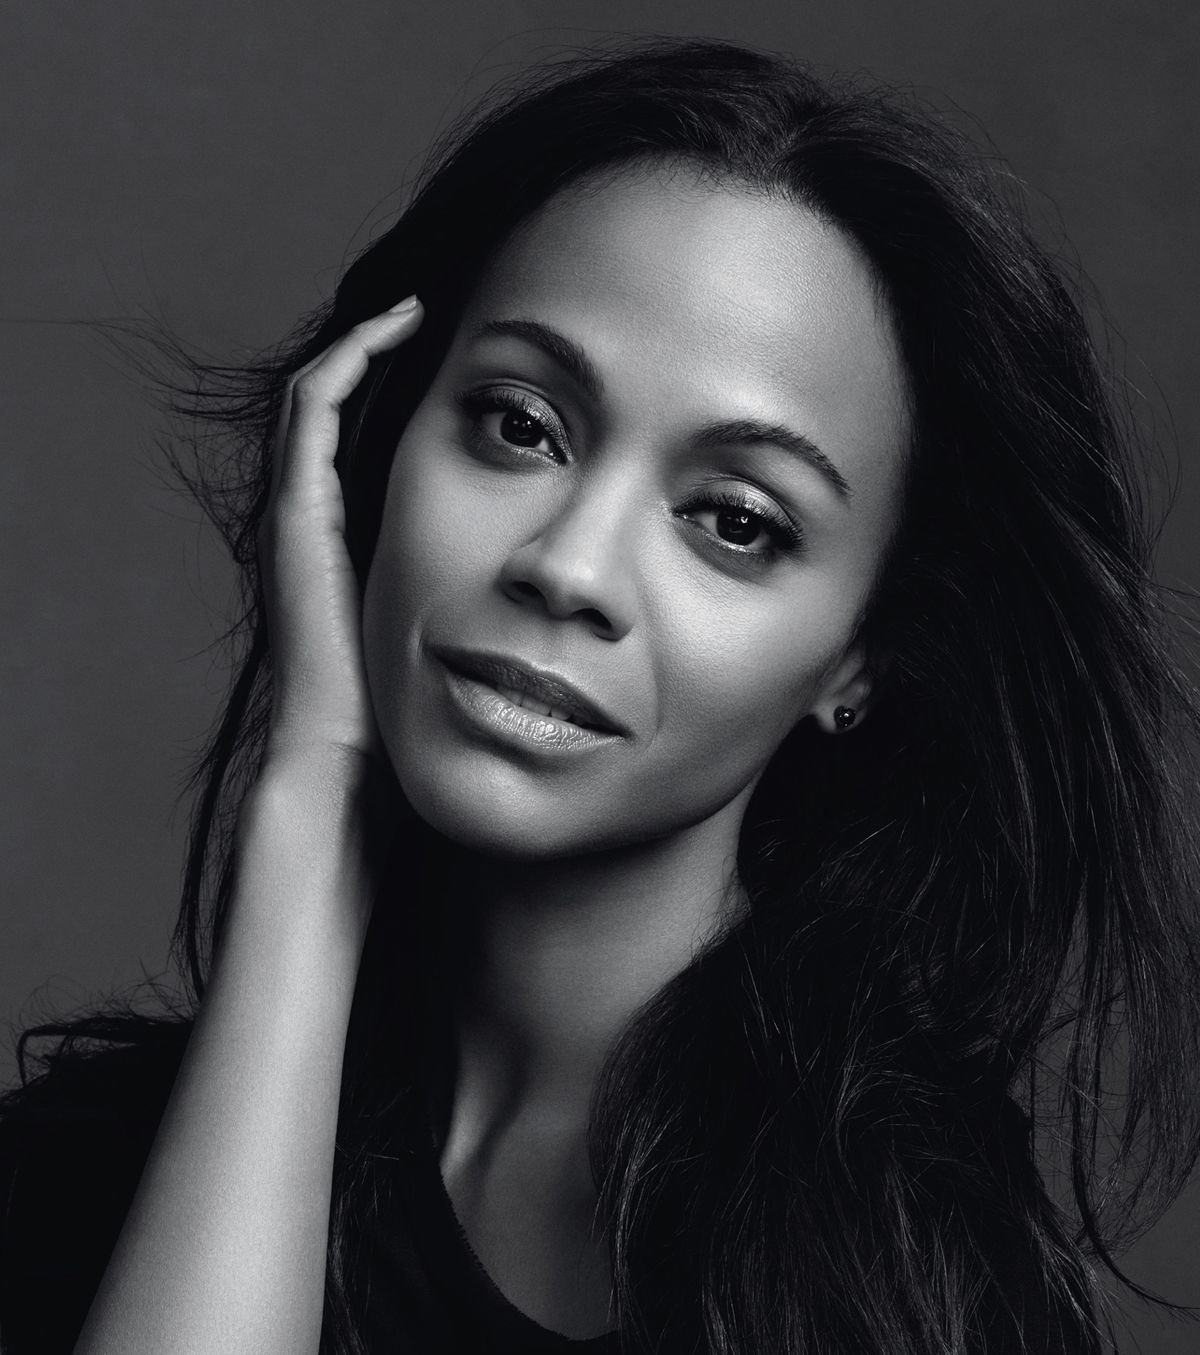 zoe saldana stylezoe saldana gif, zoe saldana avatar, zoe saldana 2016, zoe saldana vk, zoe saldana gif hunt, zoe saldana style, zoe saldana фильмы, zoe saldana marco perego, zoe saldana фото, zoe saldana wiki, zoe saldana star trek, zoe saldana movies, zoe saldana hot photo, zoe saldana sisters, zoe saldana legend, zoe saldana кинопоиск, zoe saldana 2017, zoe saldana png, zoe saldana wikipedia, zoe saldana twitter